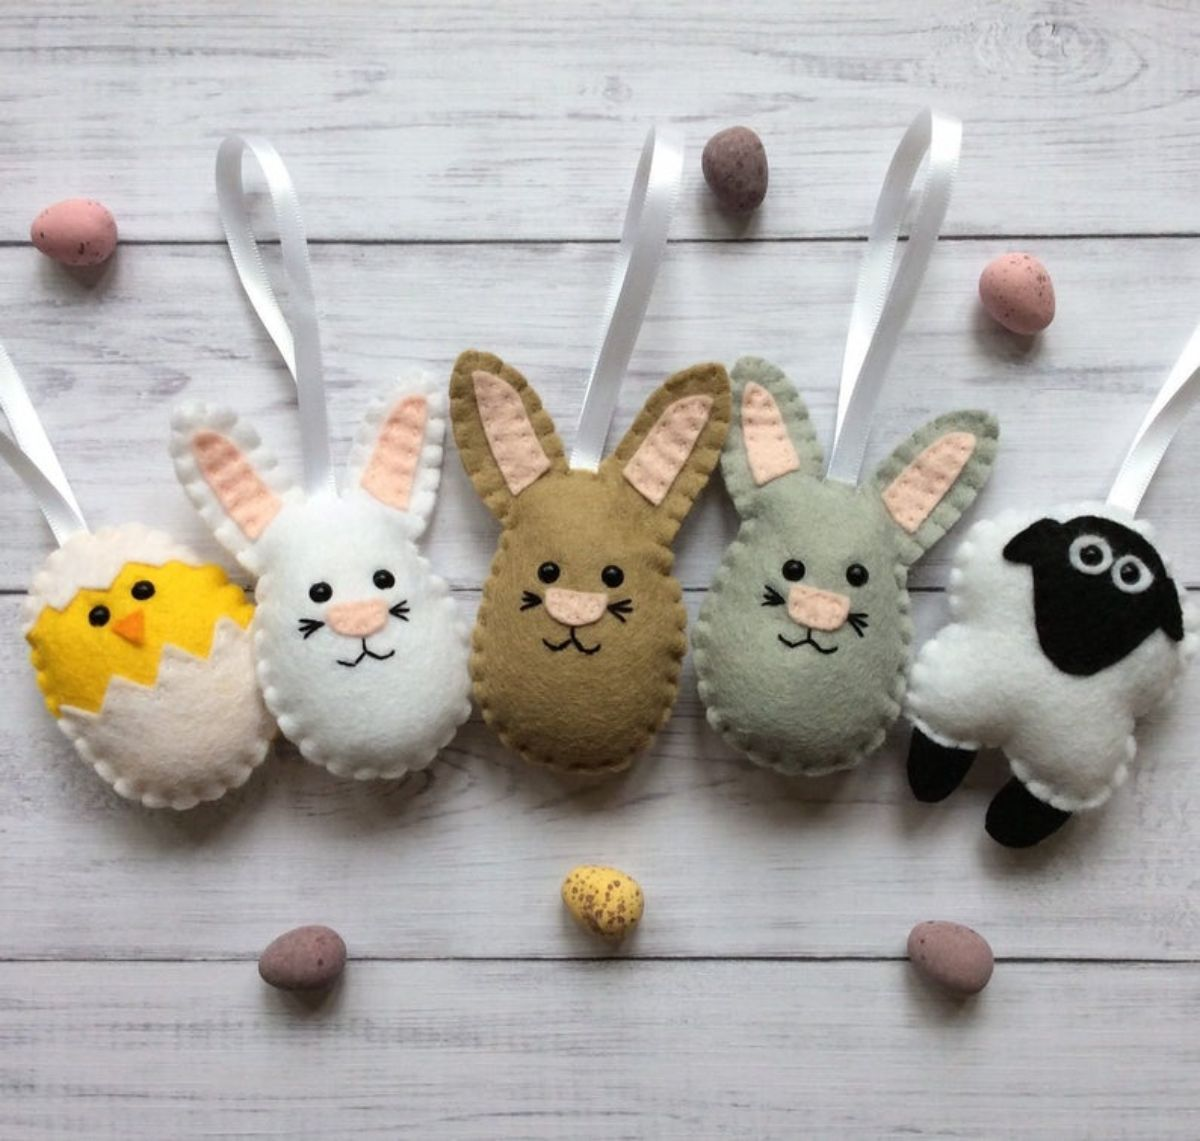 On a light wood backgrouns are a chick, mouse, brown and grey bunnies, and a sheep made out of felt